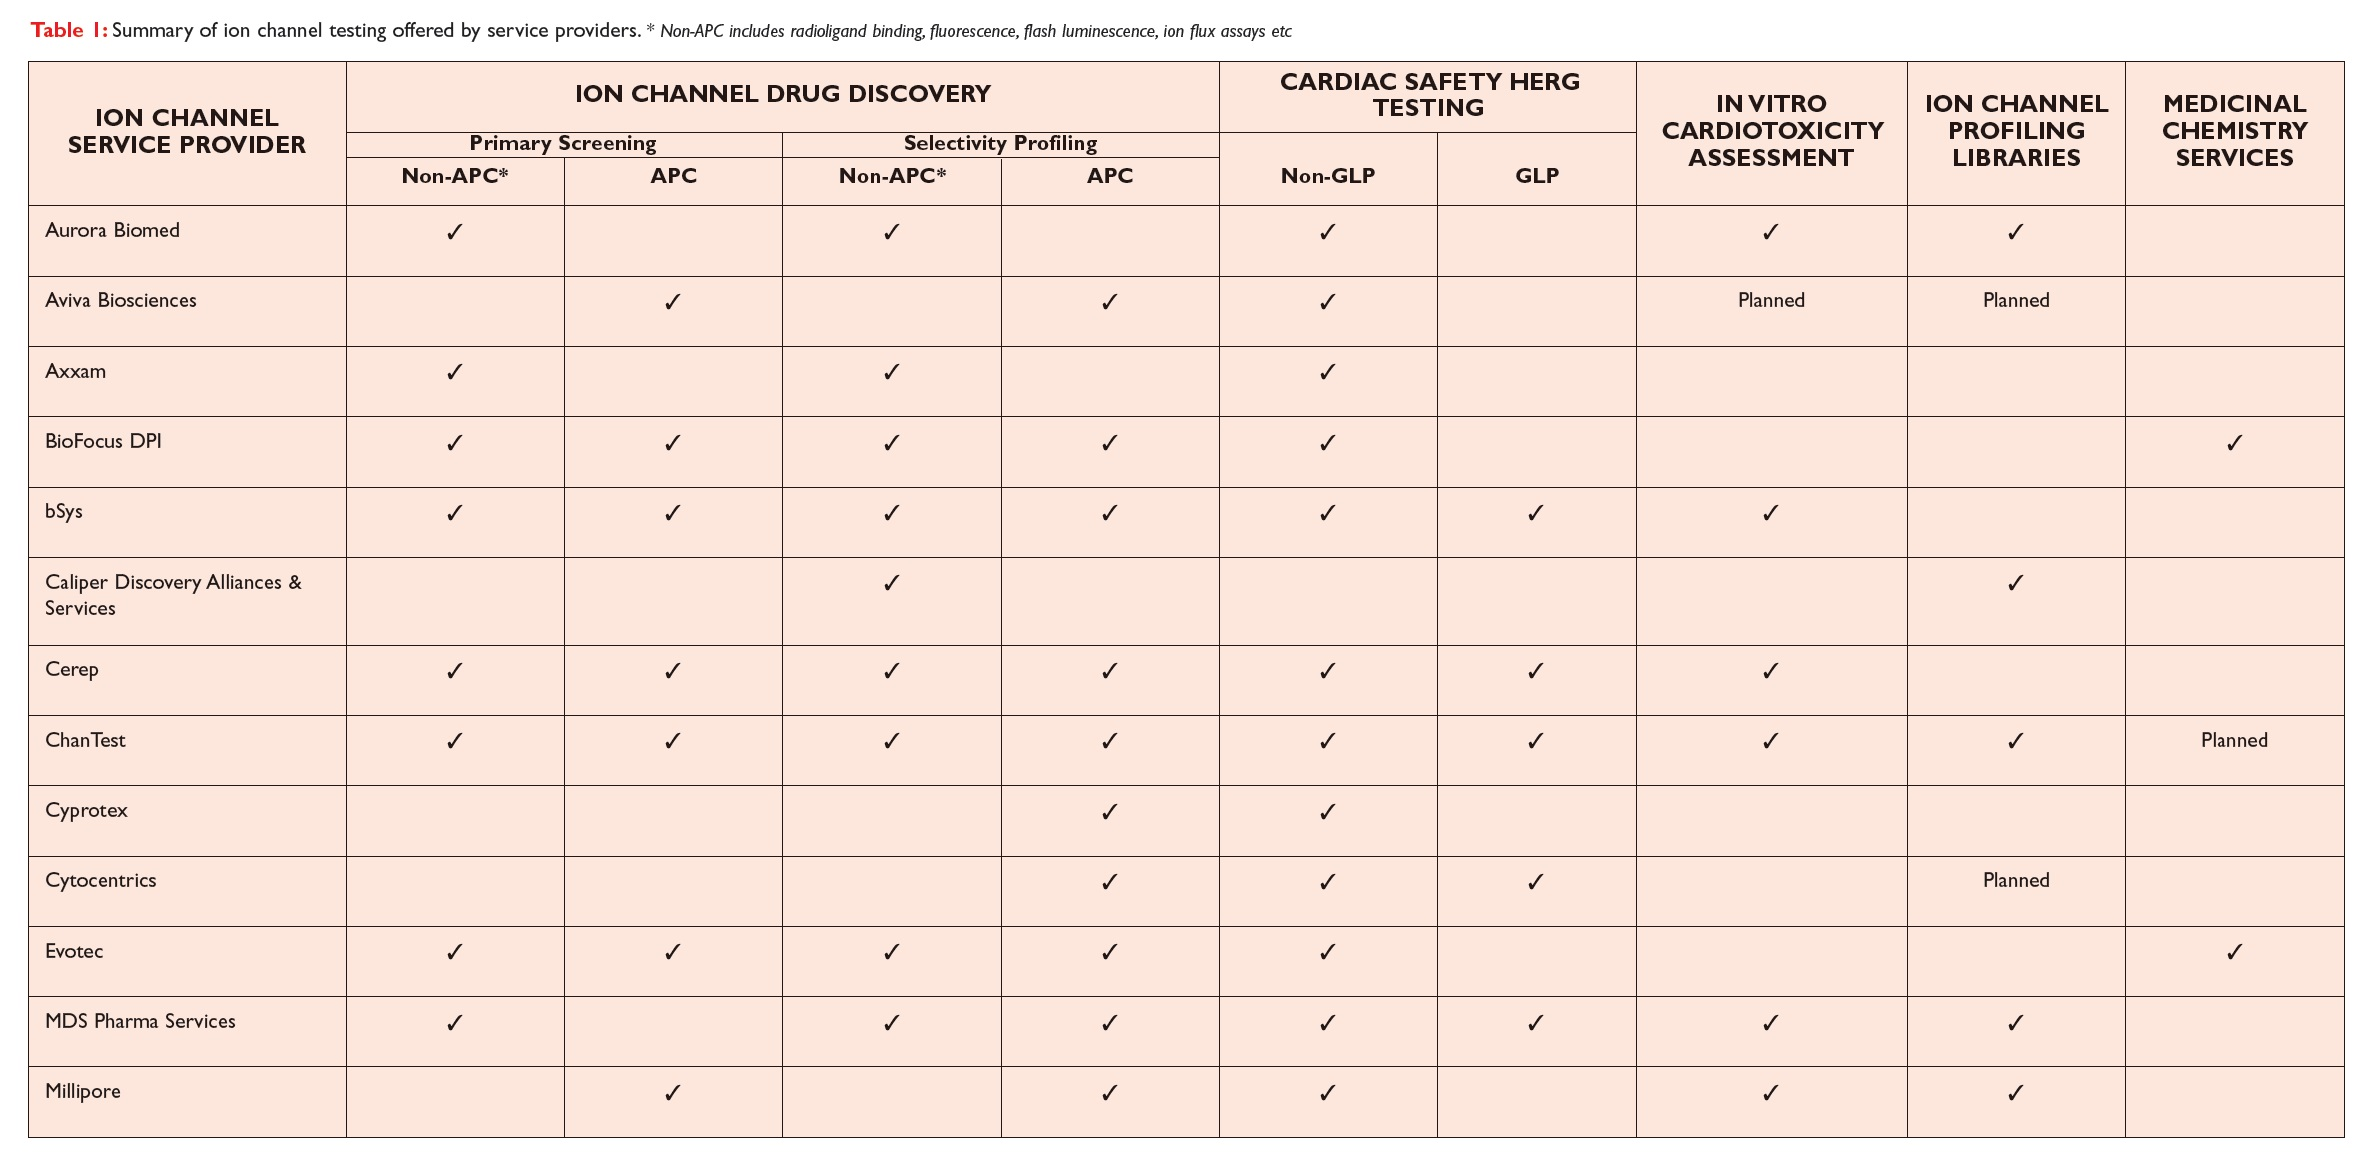 Table 1 Summary of Ion channel testing offered by service providers